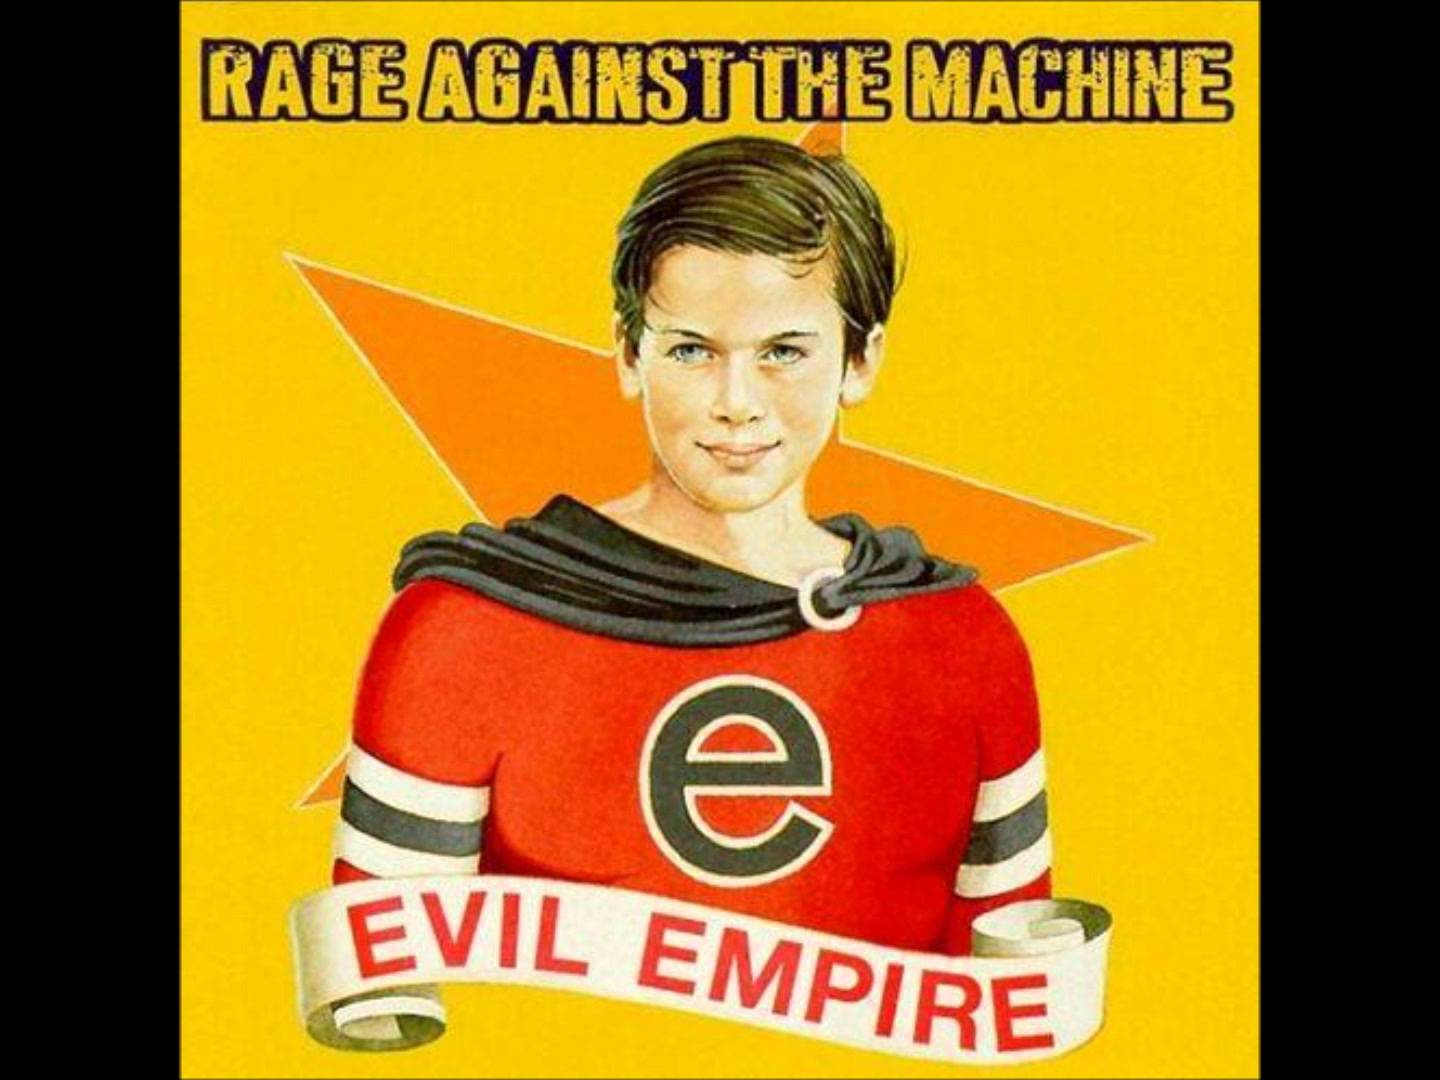 COVER ART - Gli involucri d'arte della musica. RAGE AGAINST THE MACHINE, EVIL EMPIRE – 1997